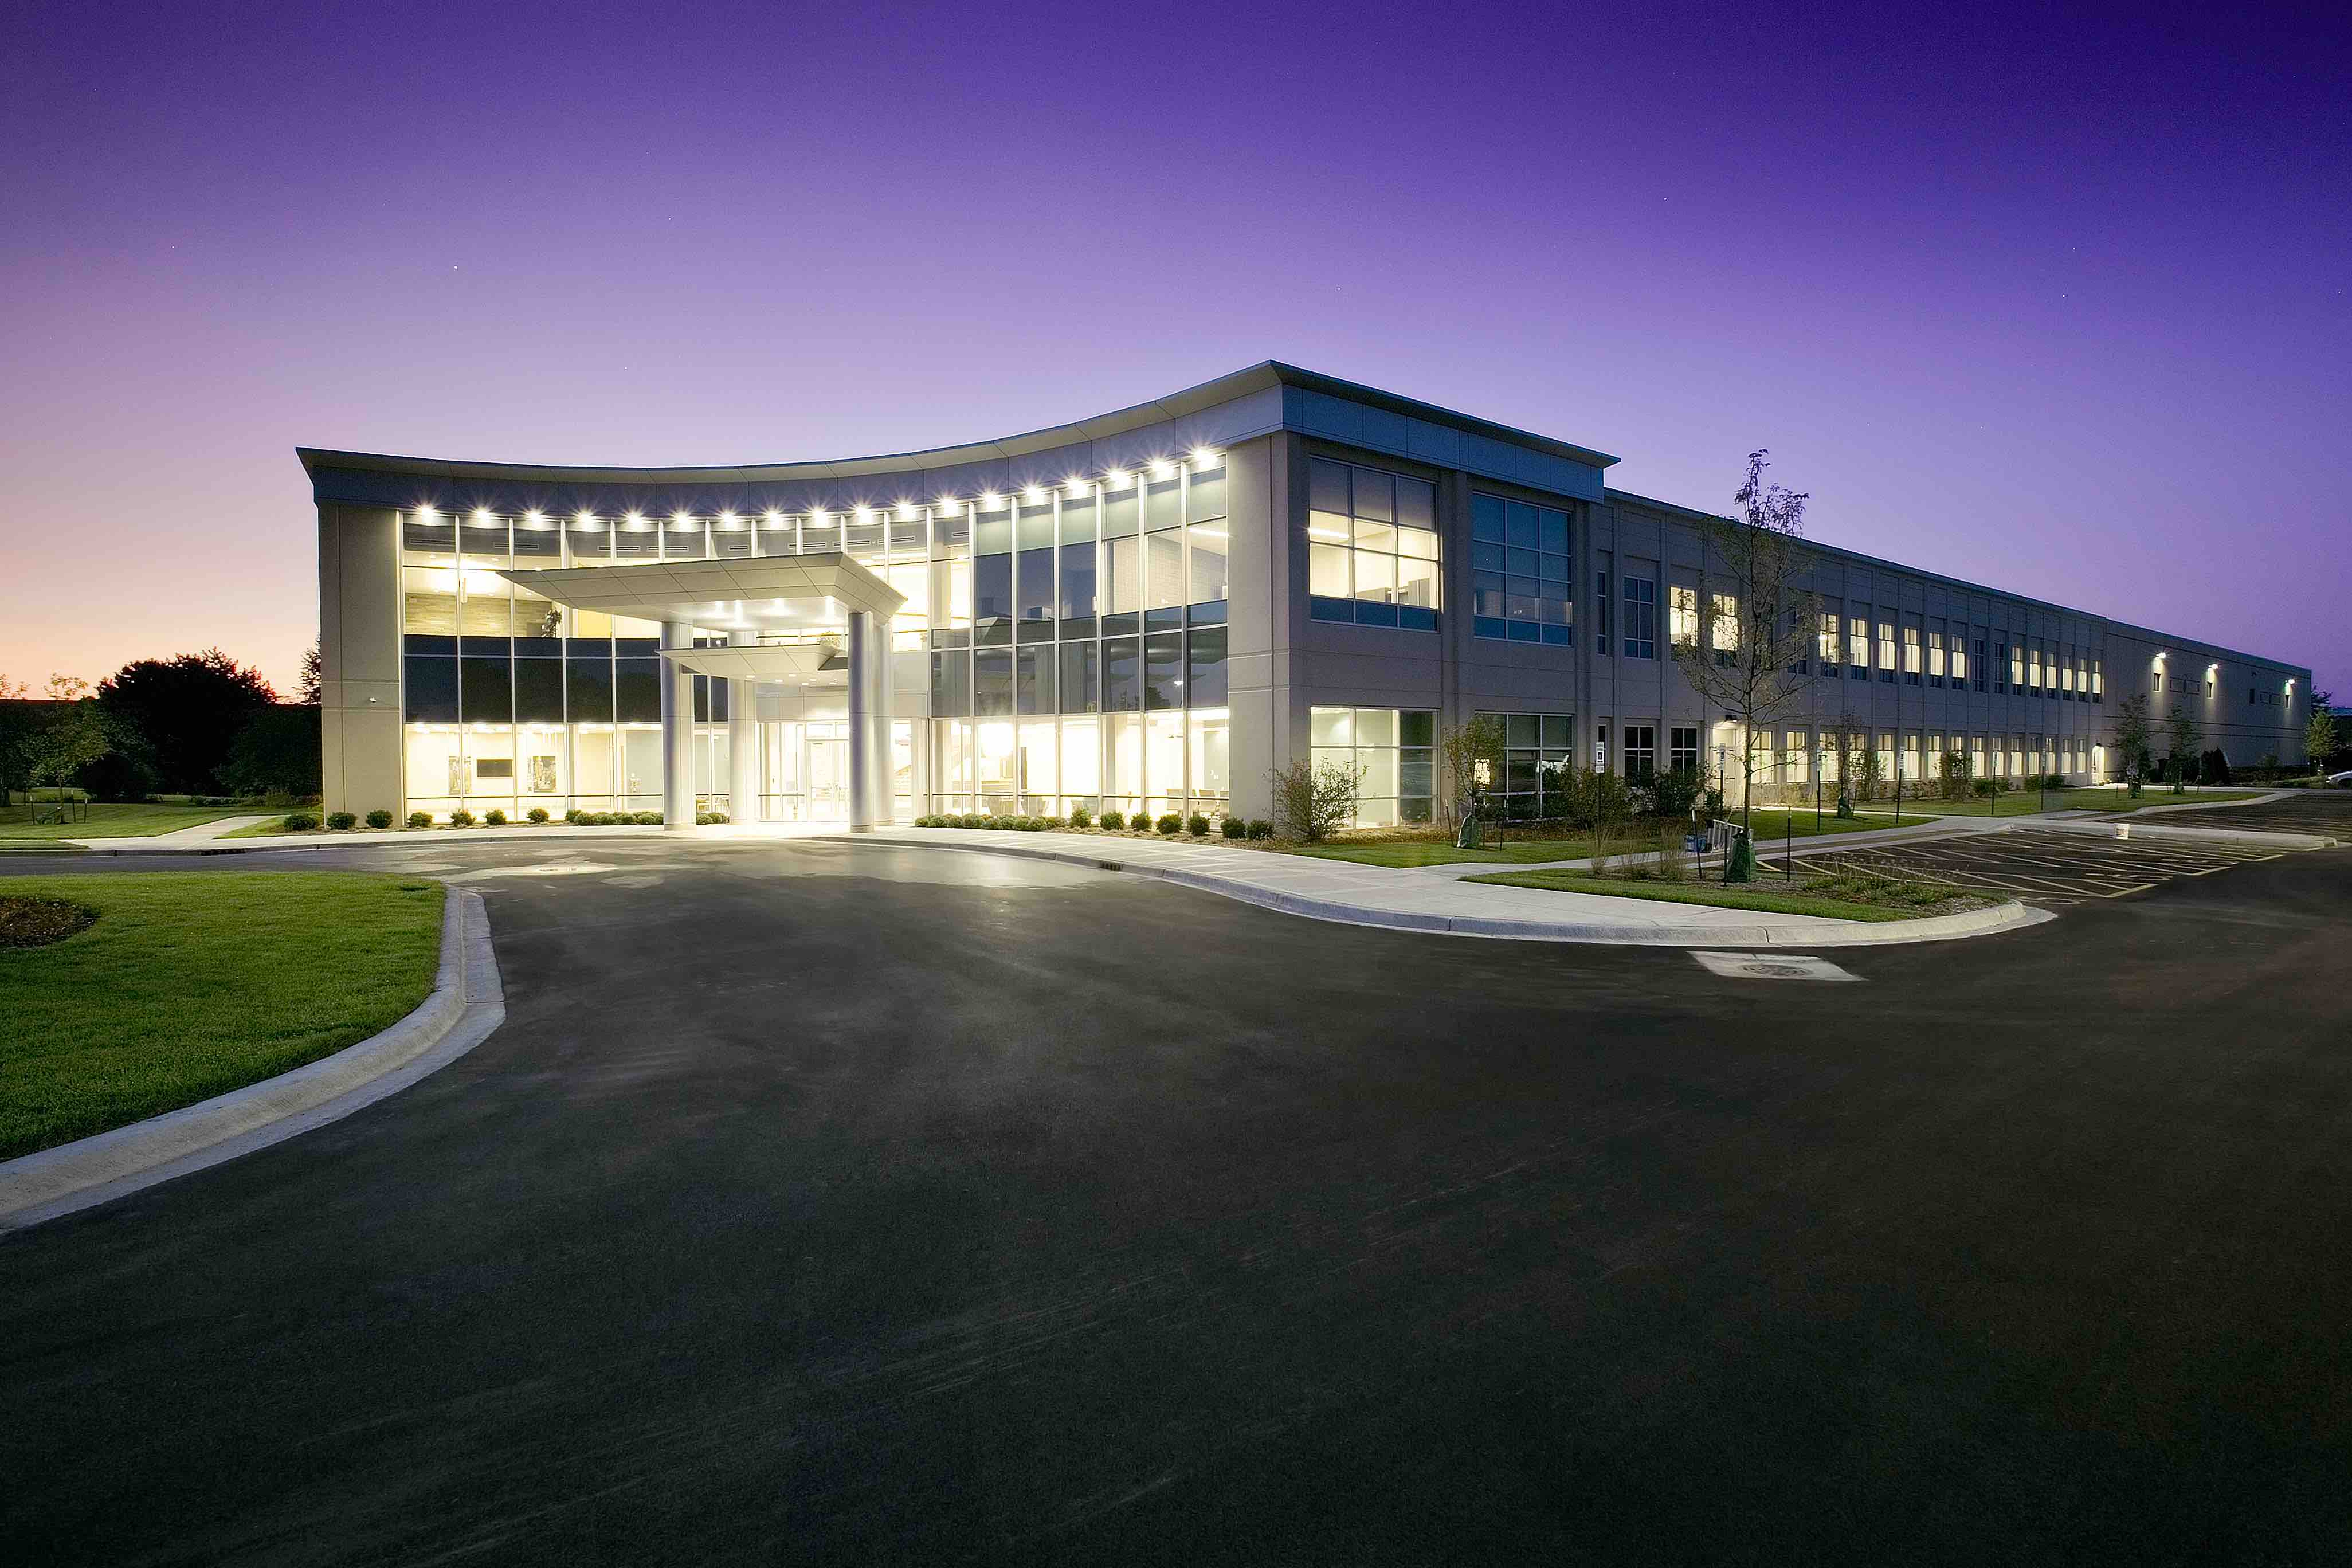 Premier Design Build Group Llc Completes World Class Jeadquarters For Echo Inc In Lake